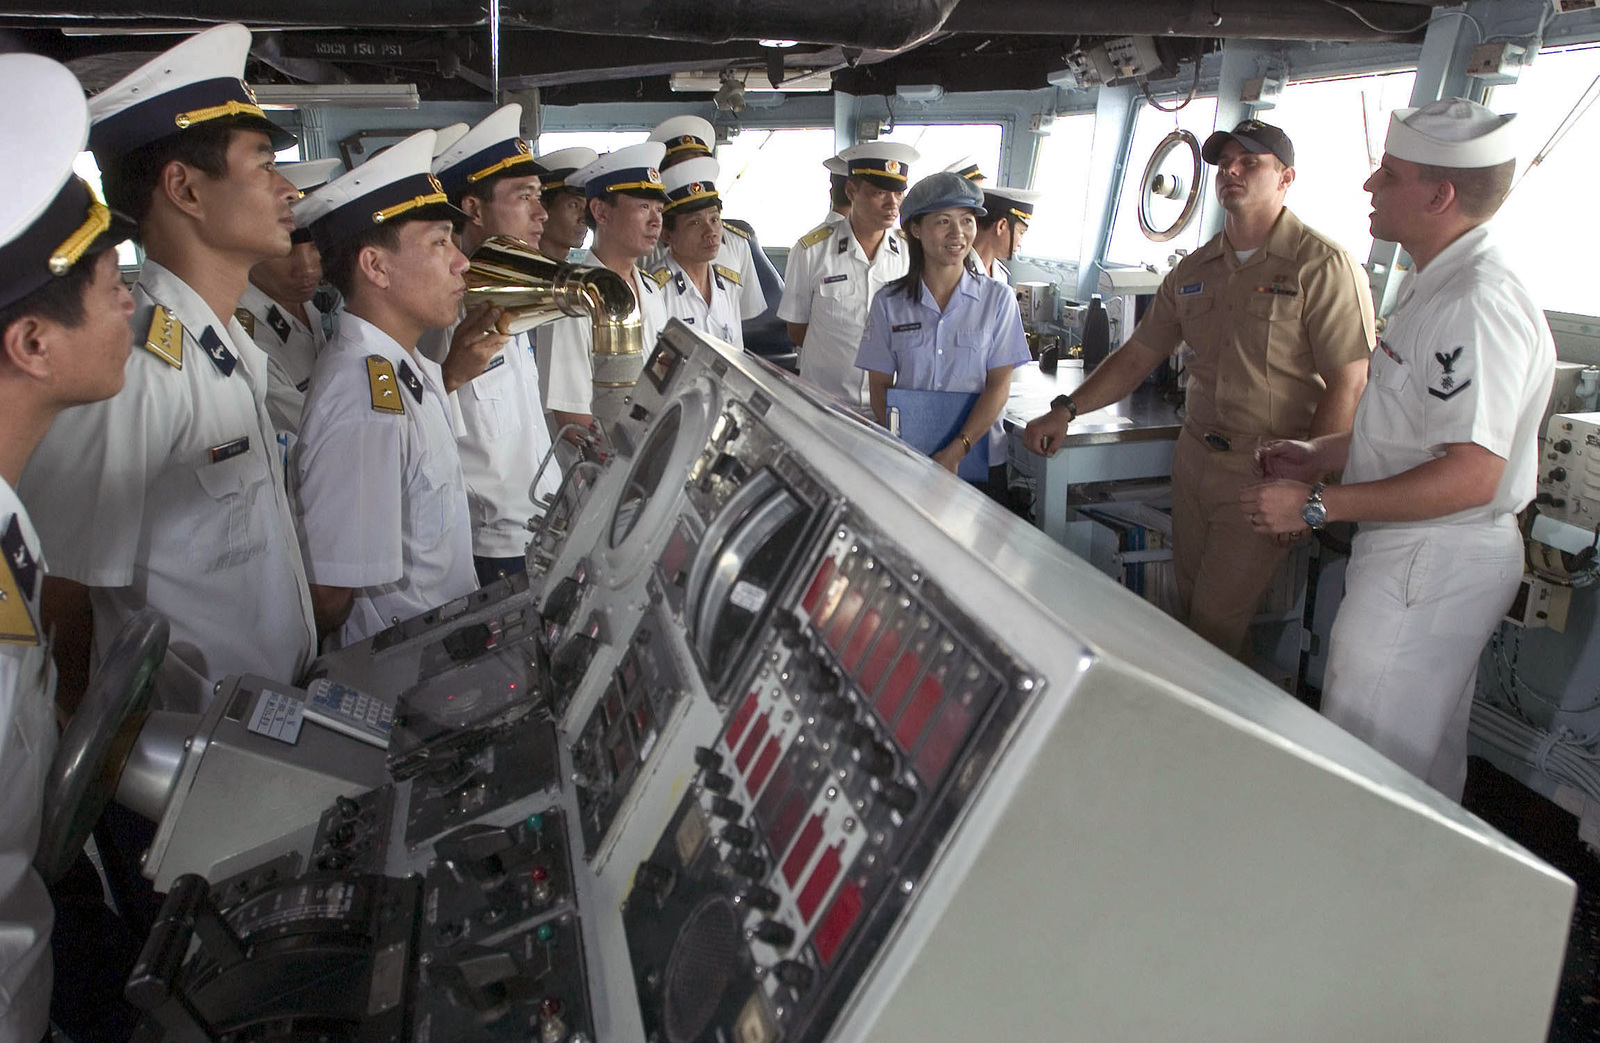 US Navy (USN ) Quartermaster Third Class (QT3) Robert Arredondo talks to People's Army of Vietnam (PAVN) members from the bridge of the USN Safeguard Class Salvage Ship USS SALVOR (ARS 52) during their visit in Ho Chi Minh City, Vietnam (VNM). During their stay, the USN Sailors will interact with the Vietnamese people through a variety of events, including a community service project at a local orphanage. Visits to Vietnam by USN ships symbolize the continuation of relations between the two nations